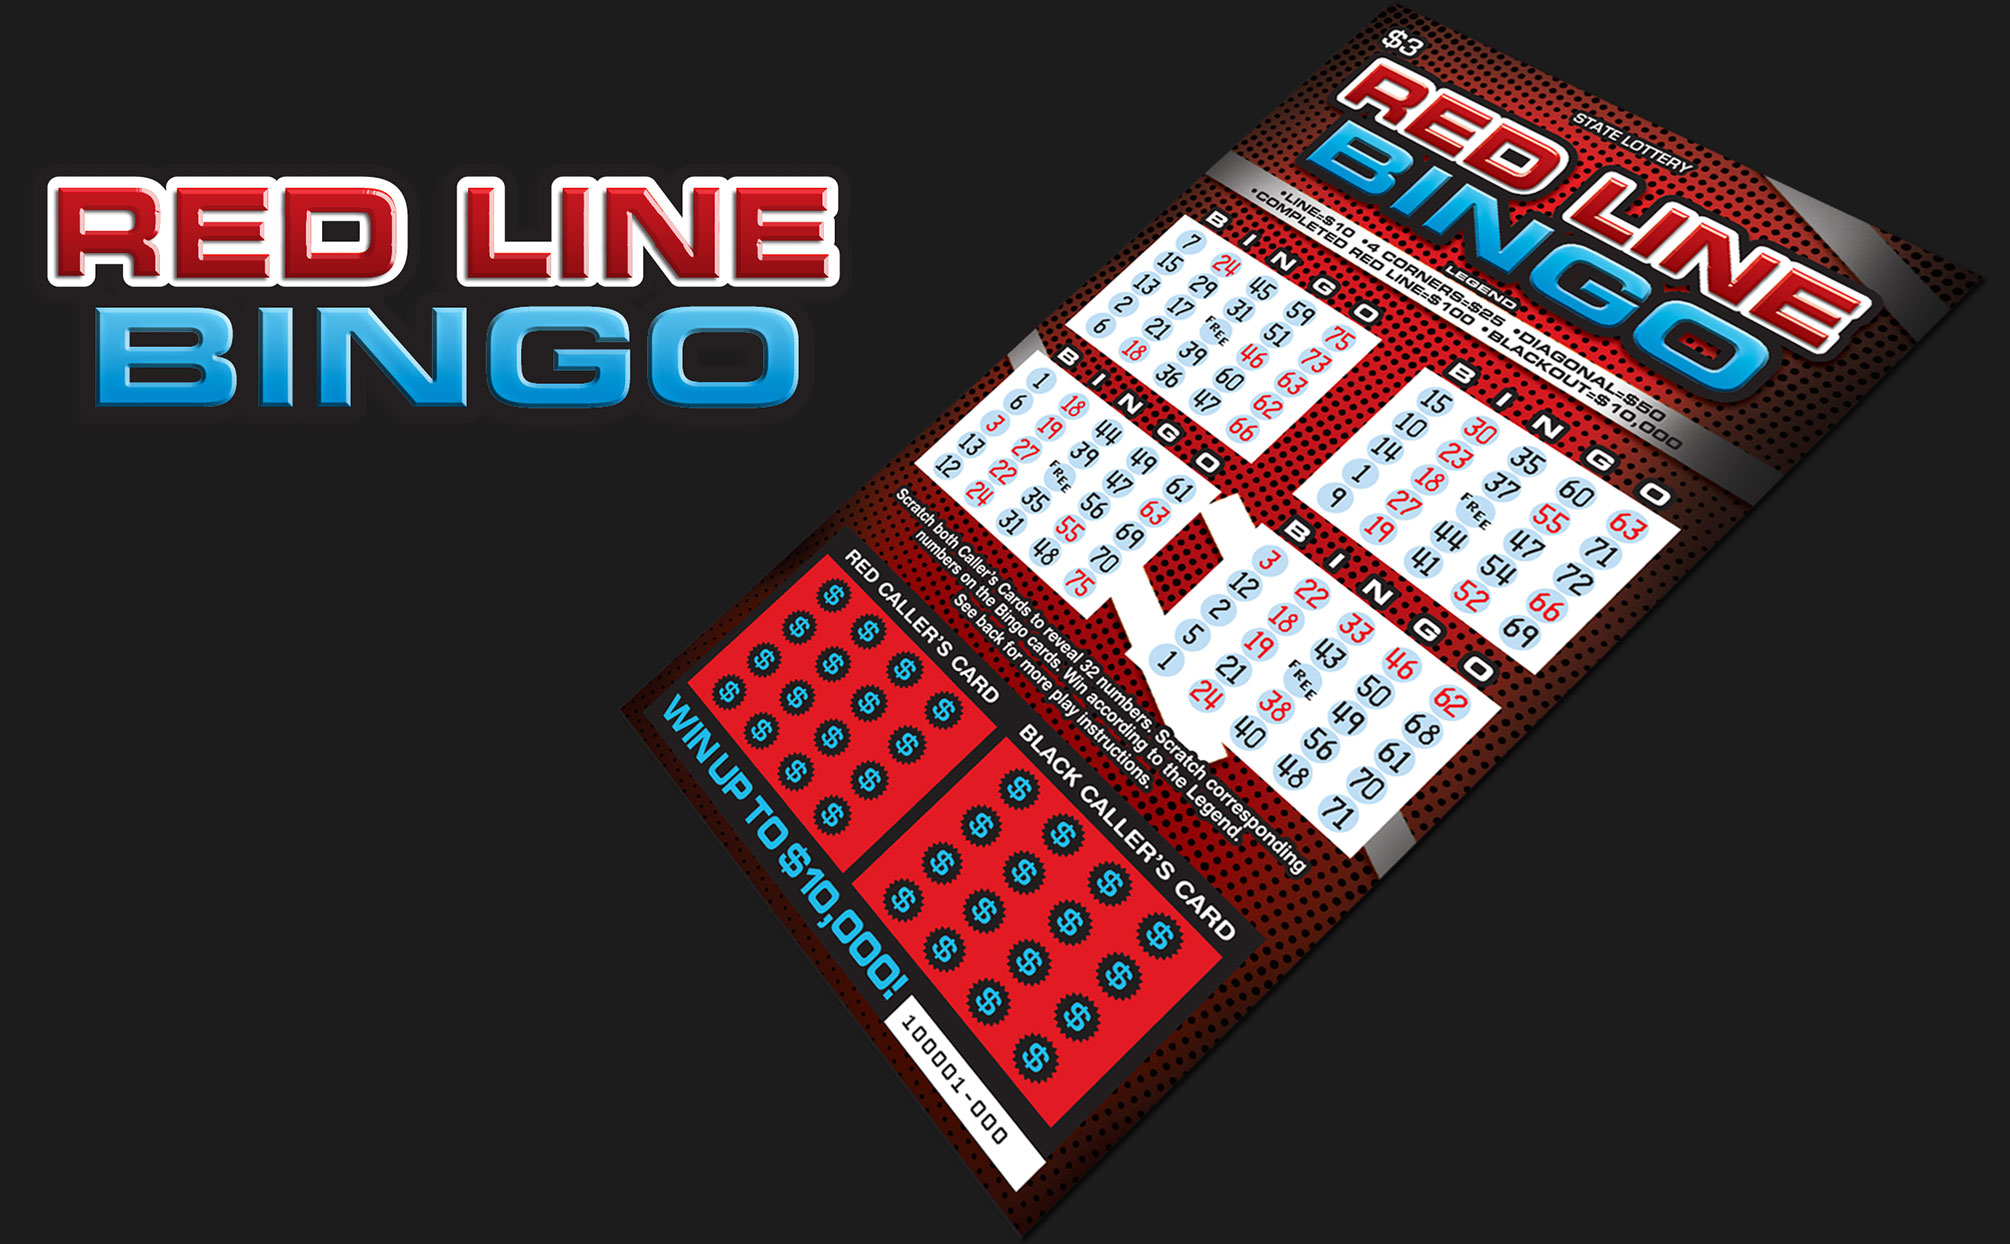 Red Line Bingo lottery ticket concept which ran in Delaware lottery.